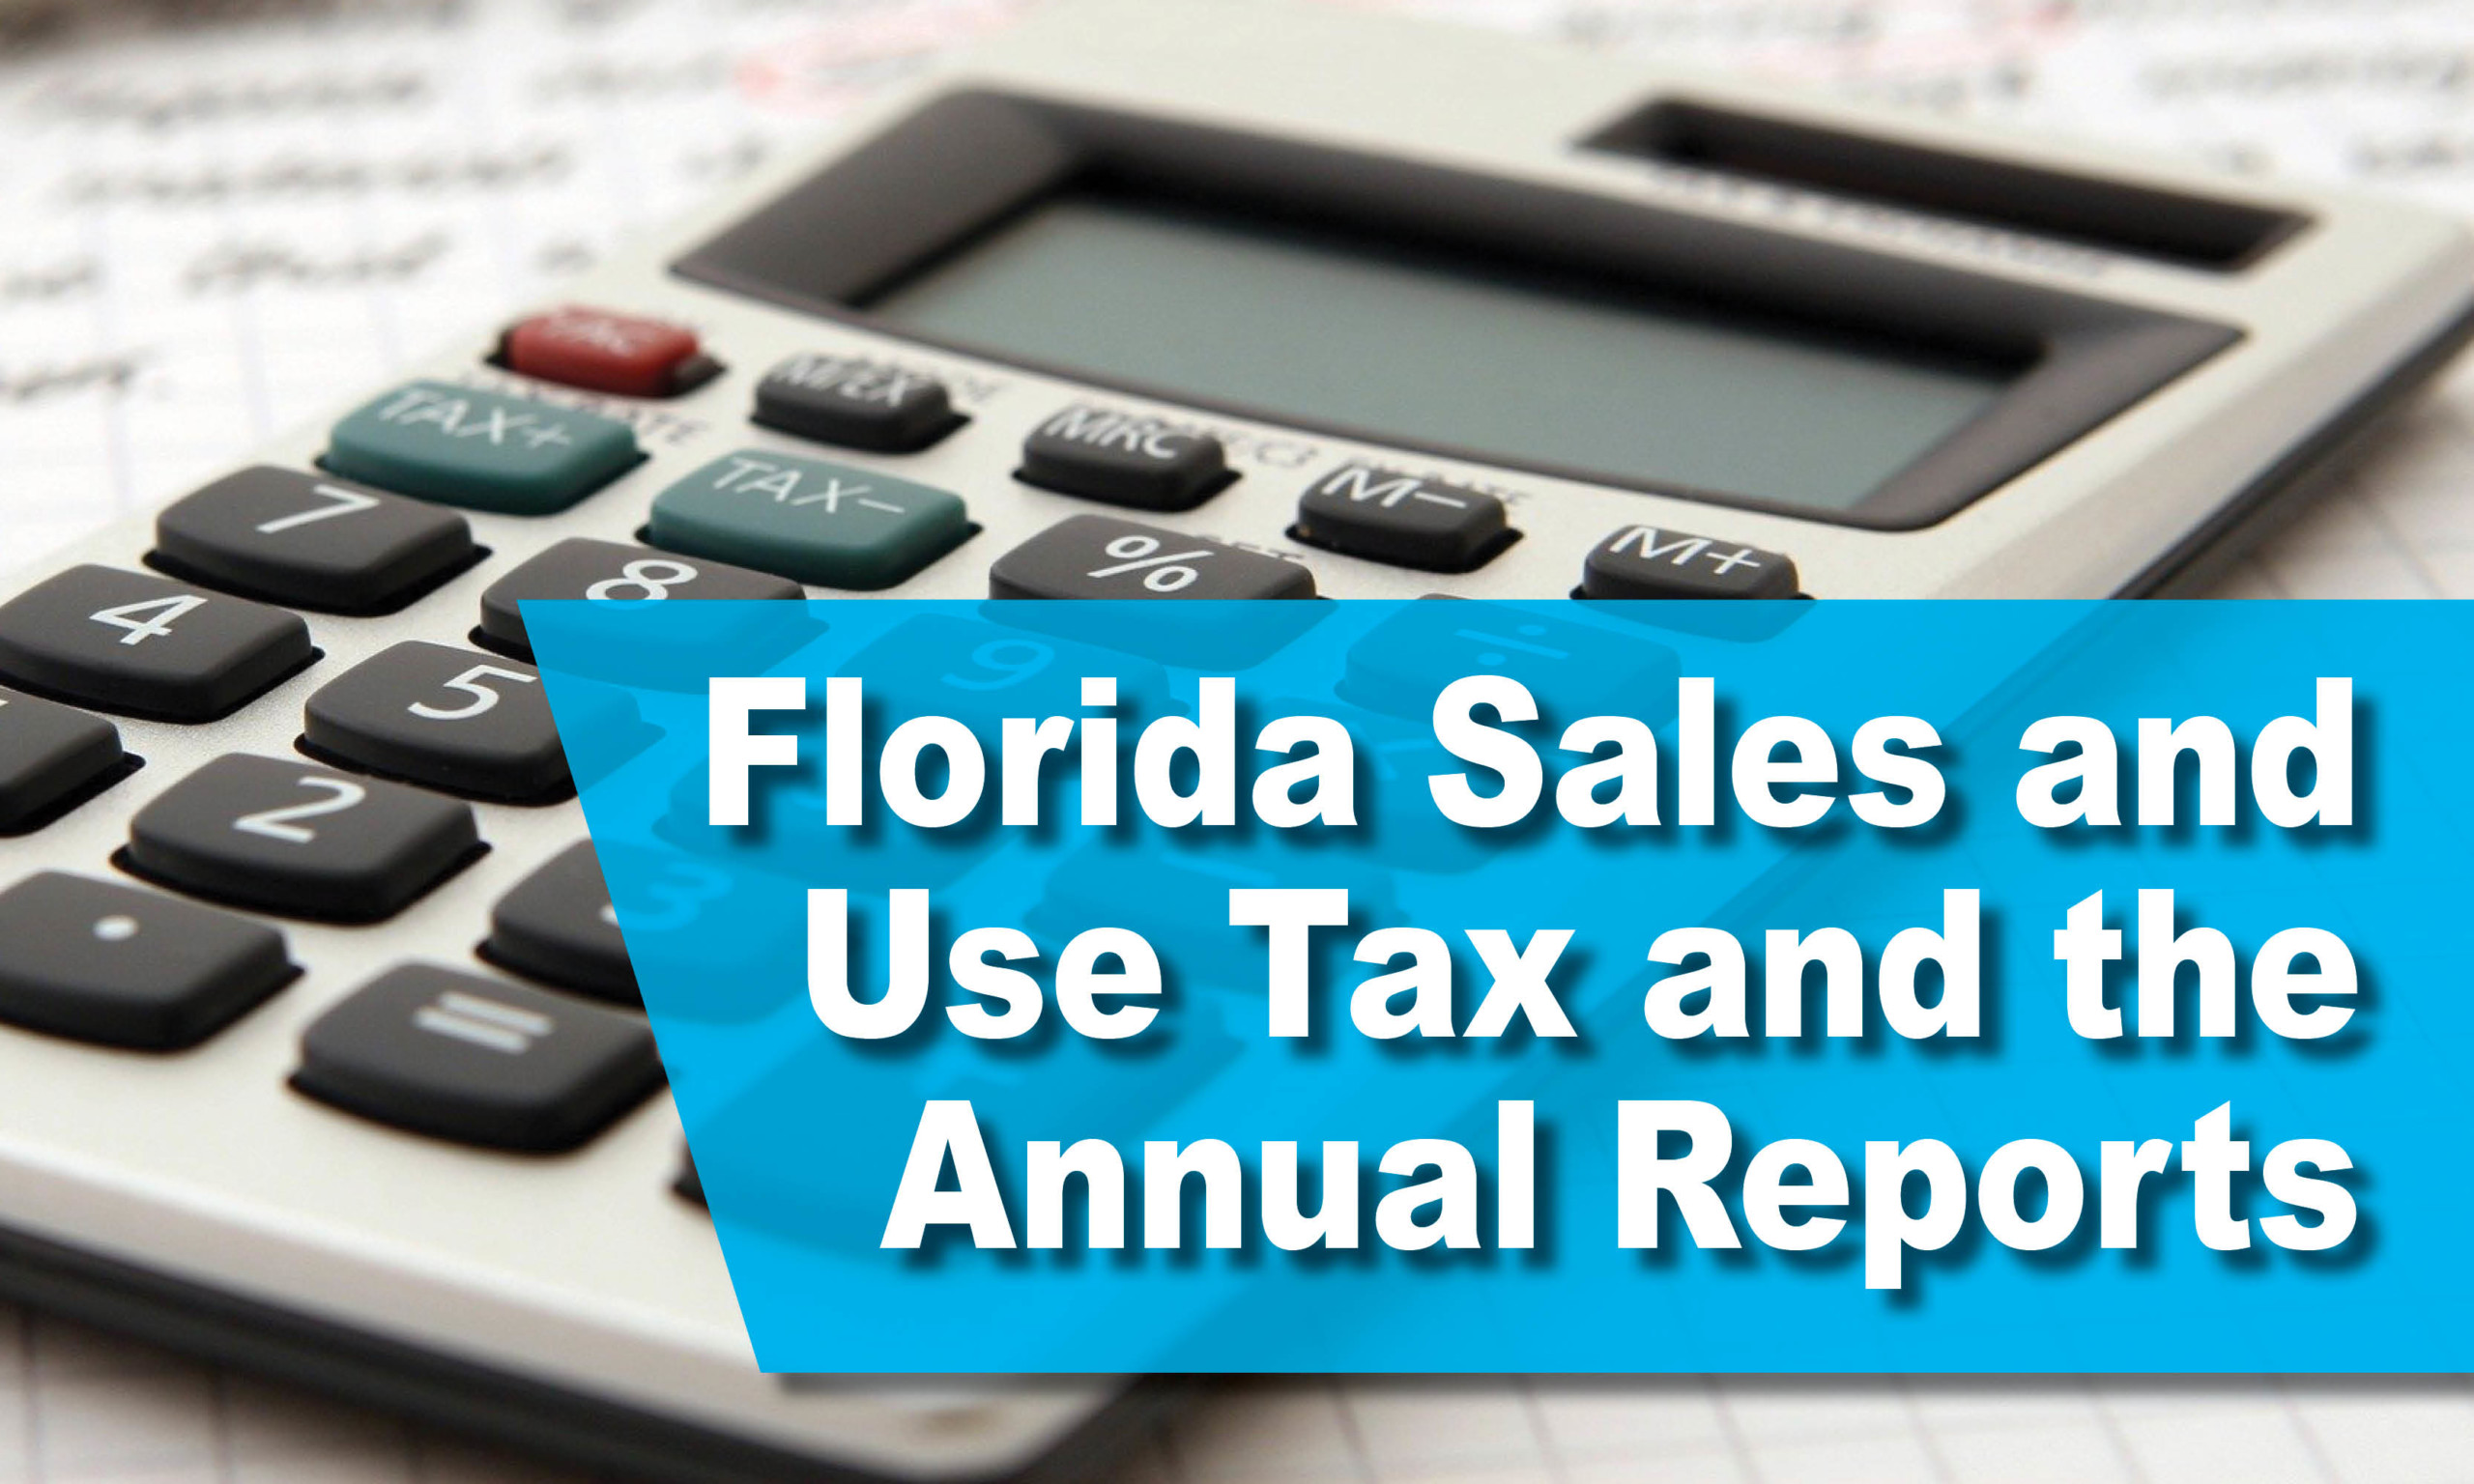 Florida Sales and Use Tax and the Annual Reports